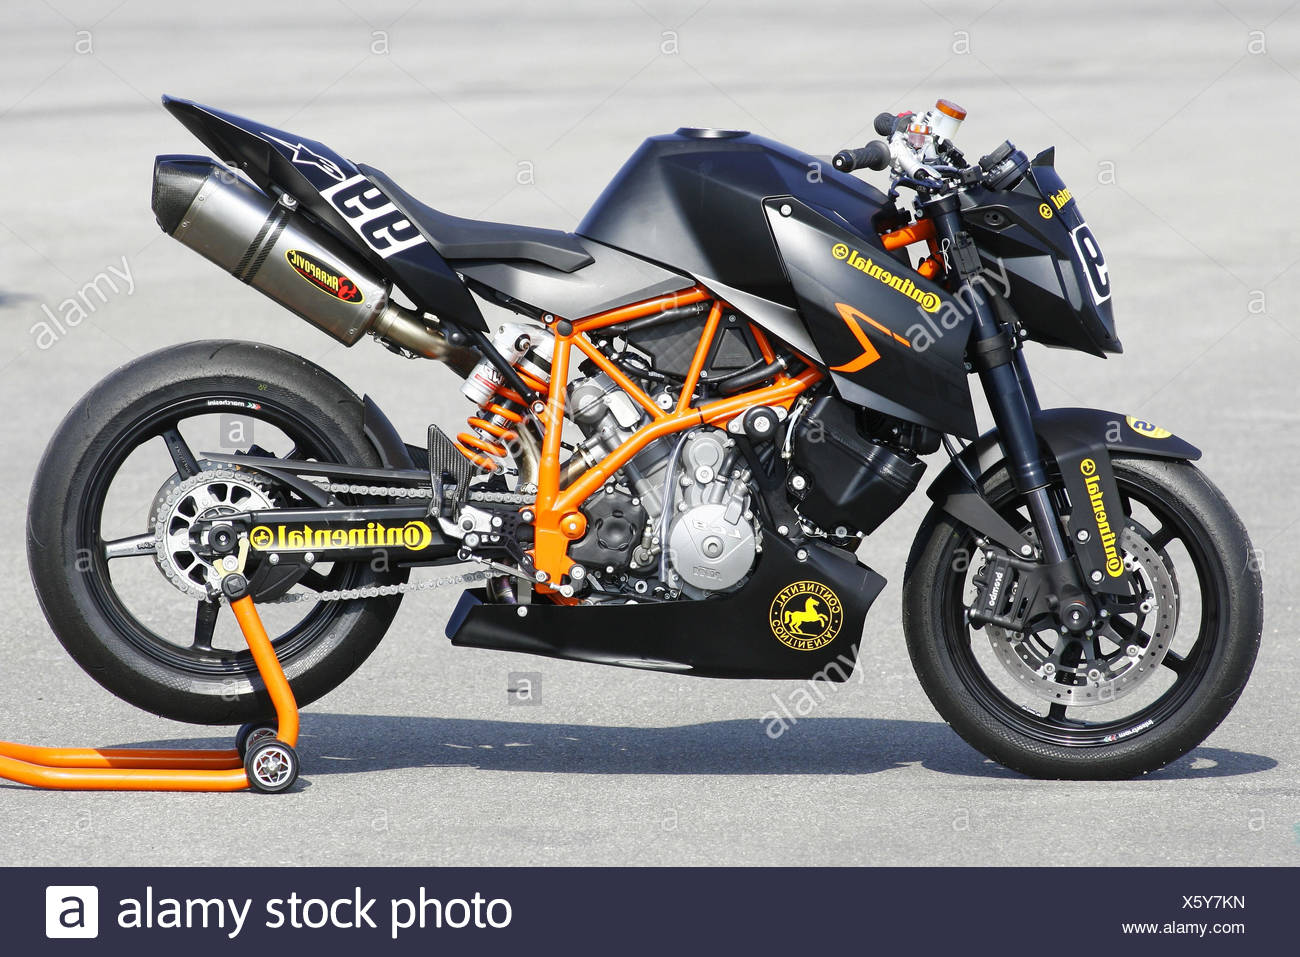 KTM LC8, standard, preview, - Stock Image